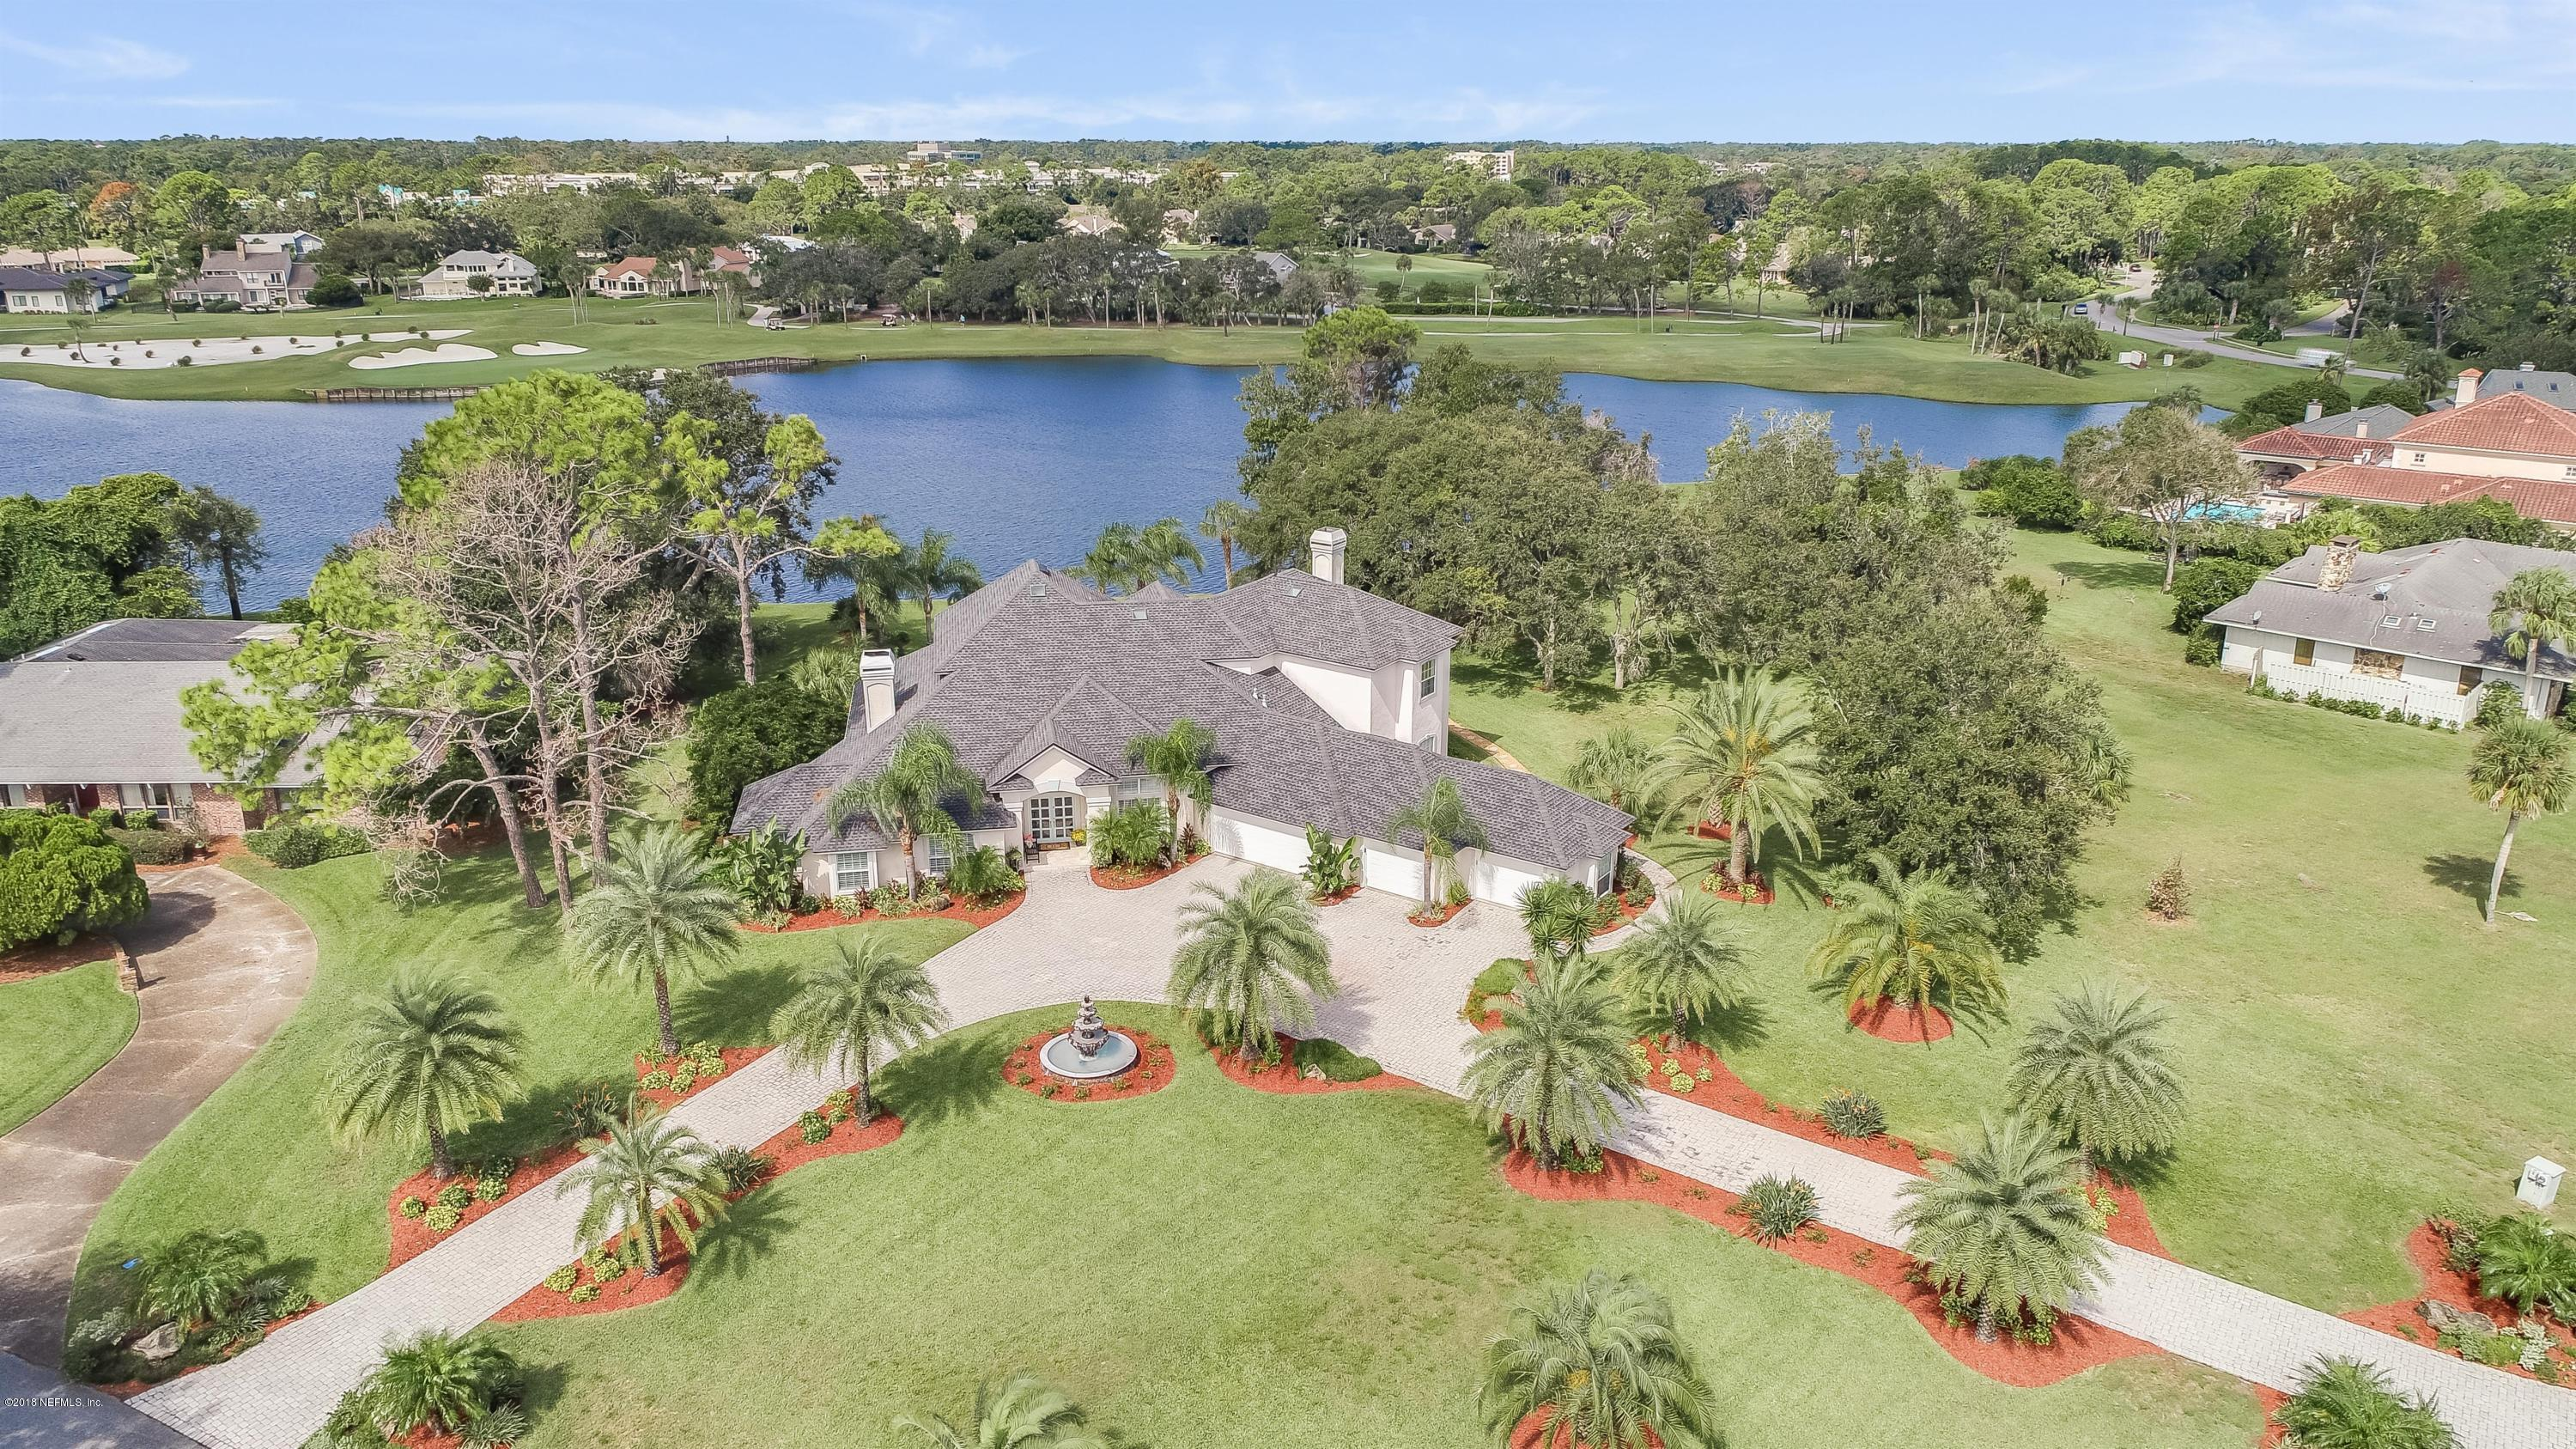 9301 PRESTON, PONTE VEDRA BEACH, FLORIDA 32082, 6 Bedrooms Bedrooms, ,5 BathroomsBathrooms,Residential - single family,For sale,PRESTON,962793